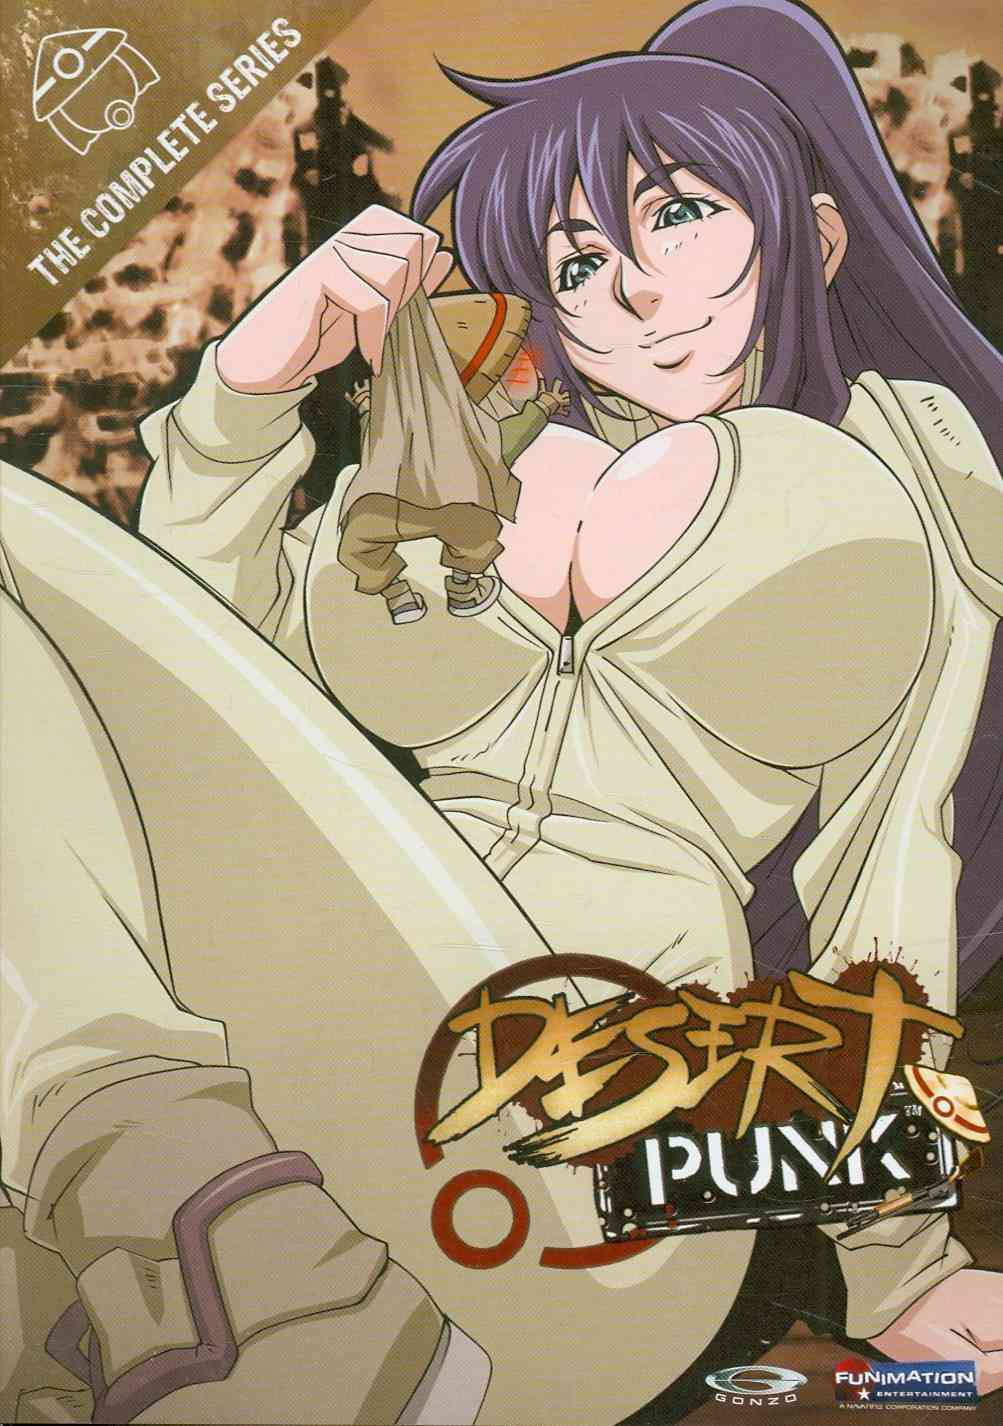 DESERT PUNK (VIRIDIAN COLLECTION 2) BY DESERT PUNK (DVD)